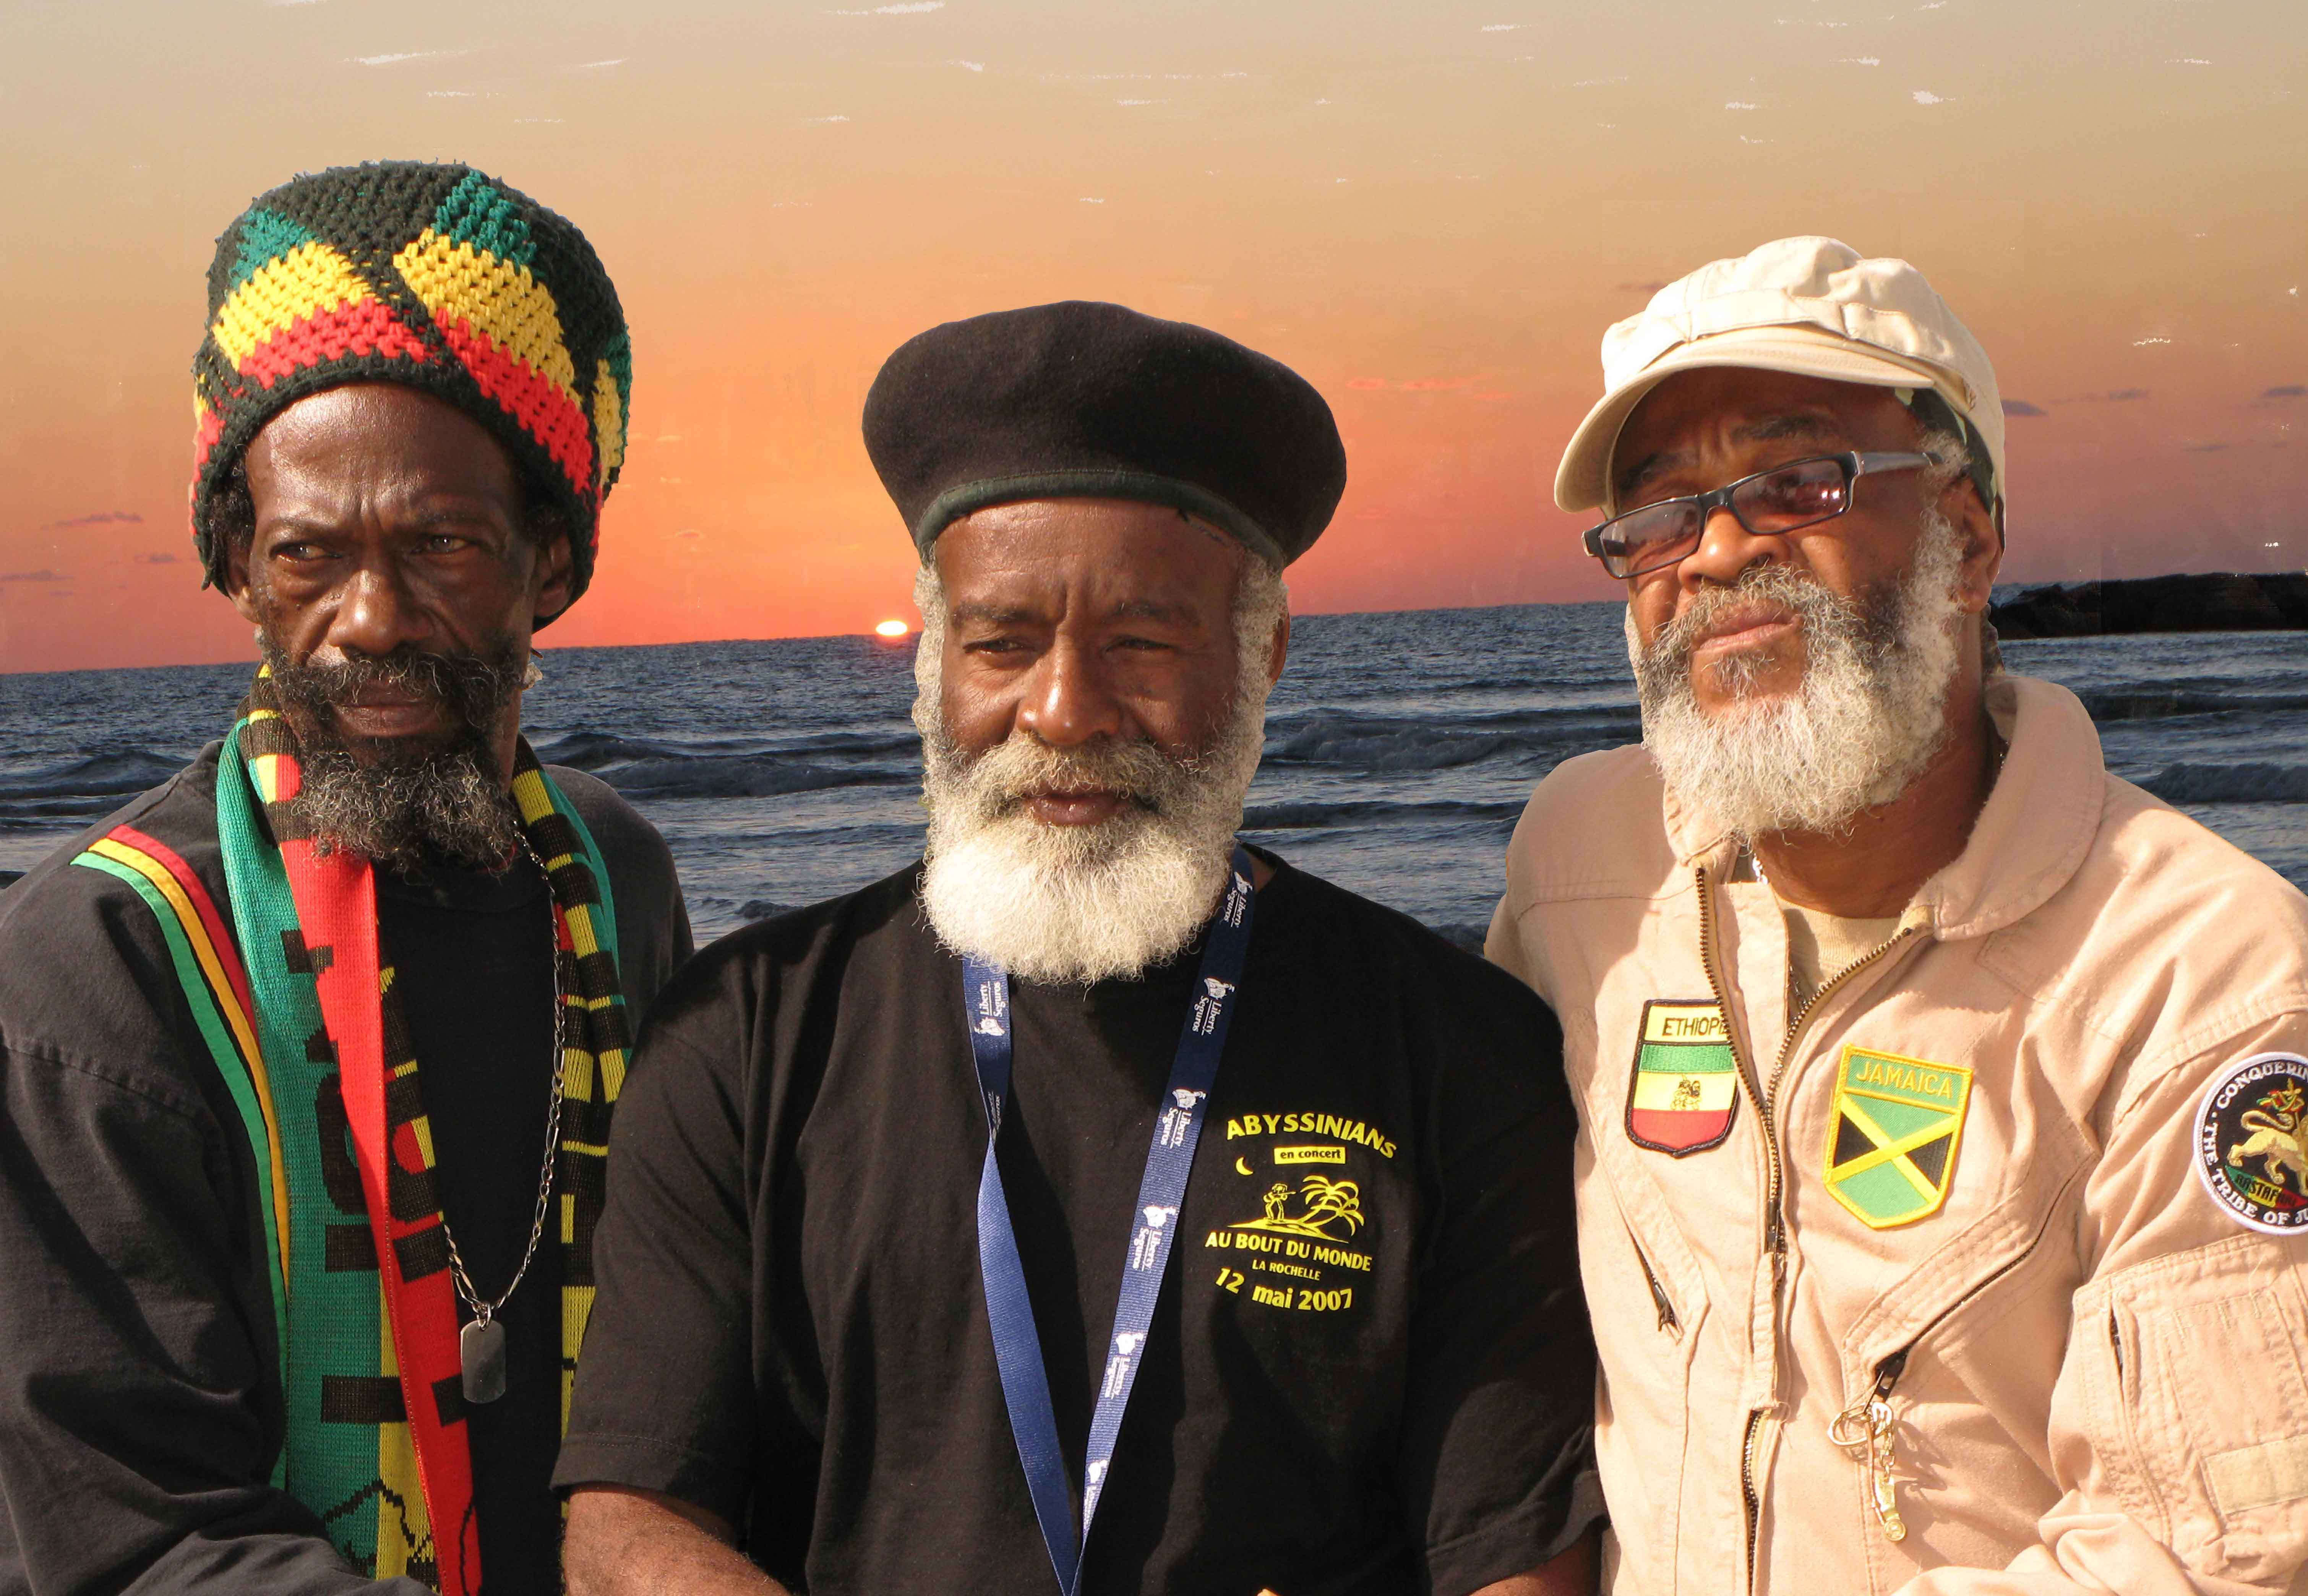 THE ABYSSINIANS AL MIV IL 28.08.19